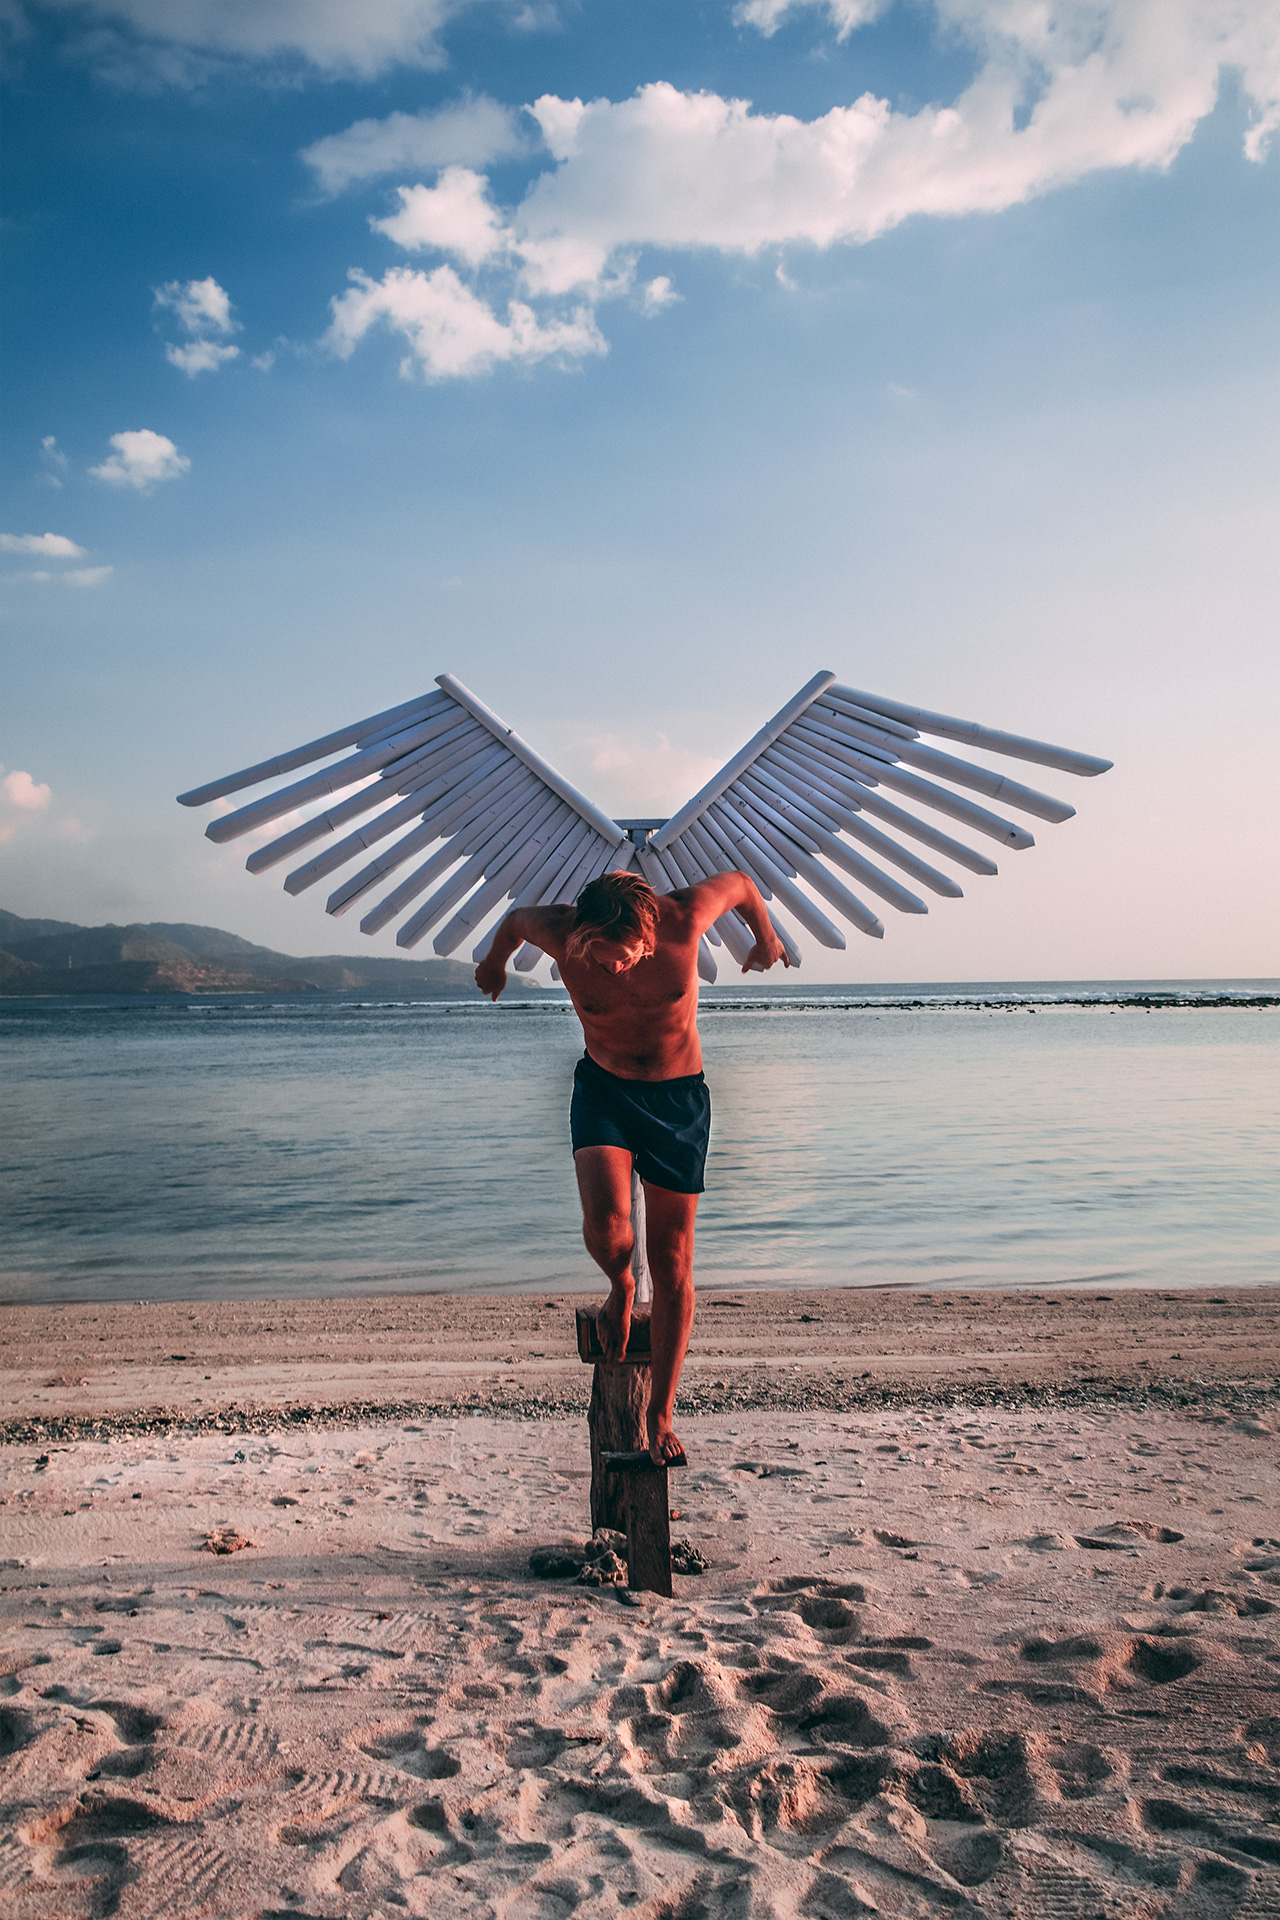 Instagram Angel Photo Point, Gili Trawangan | Can I travel to the Gili Islands after the earthquakes?